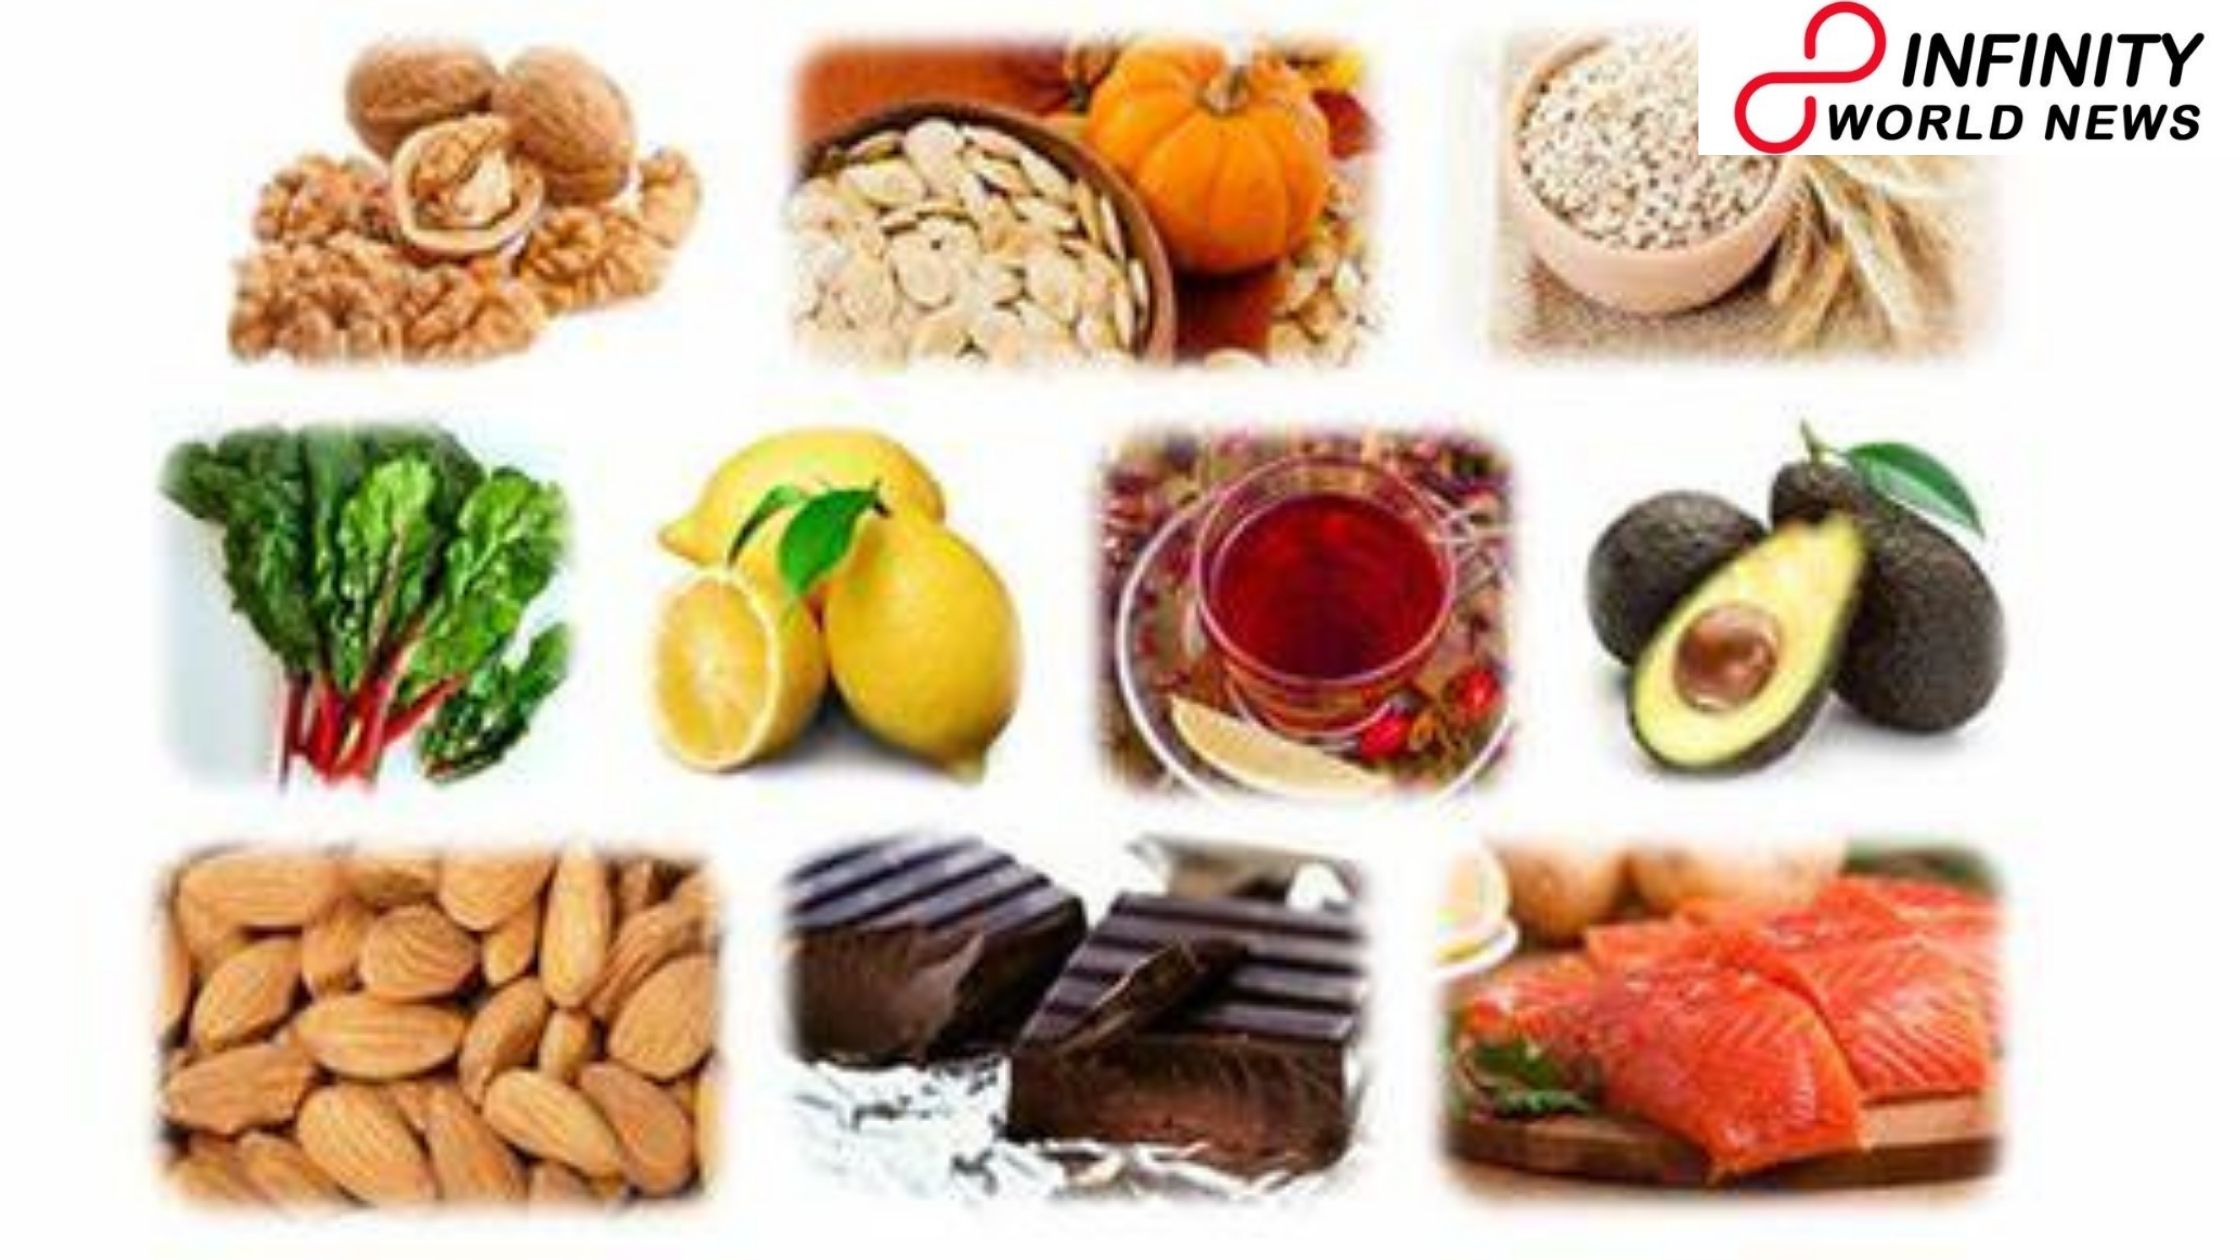 Nourishment For Concentration: Brain-Boosting Food Items That May Keep You Sharp And Help Excel in Exams